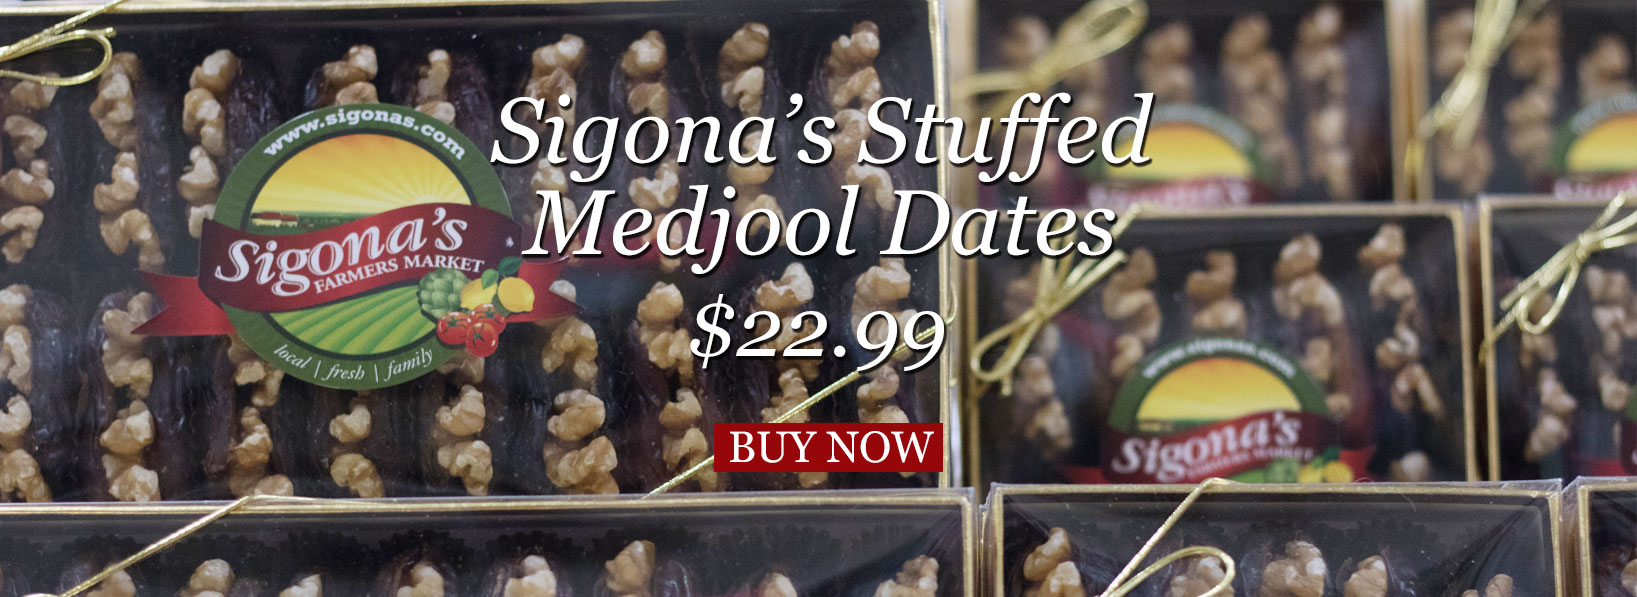 Sigona's Stuffed Medjool